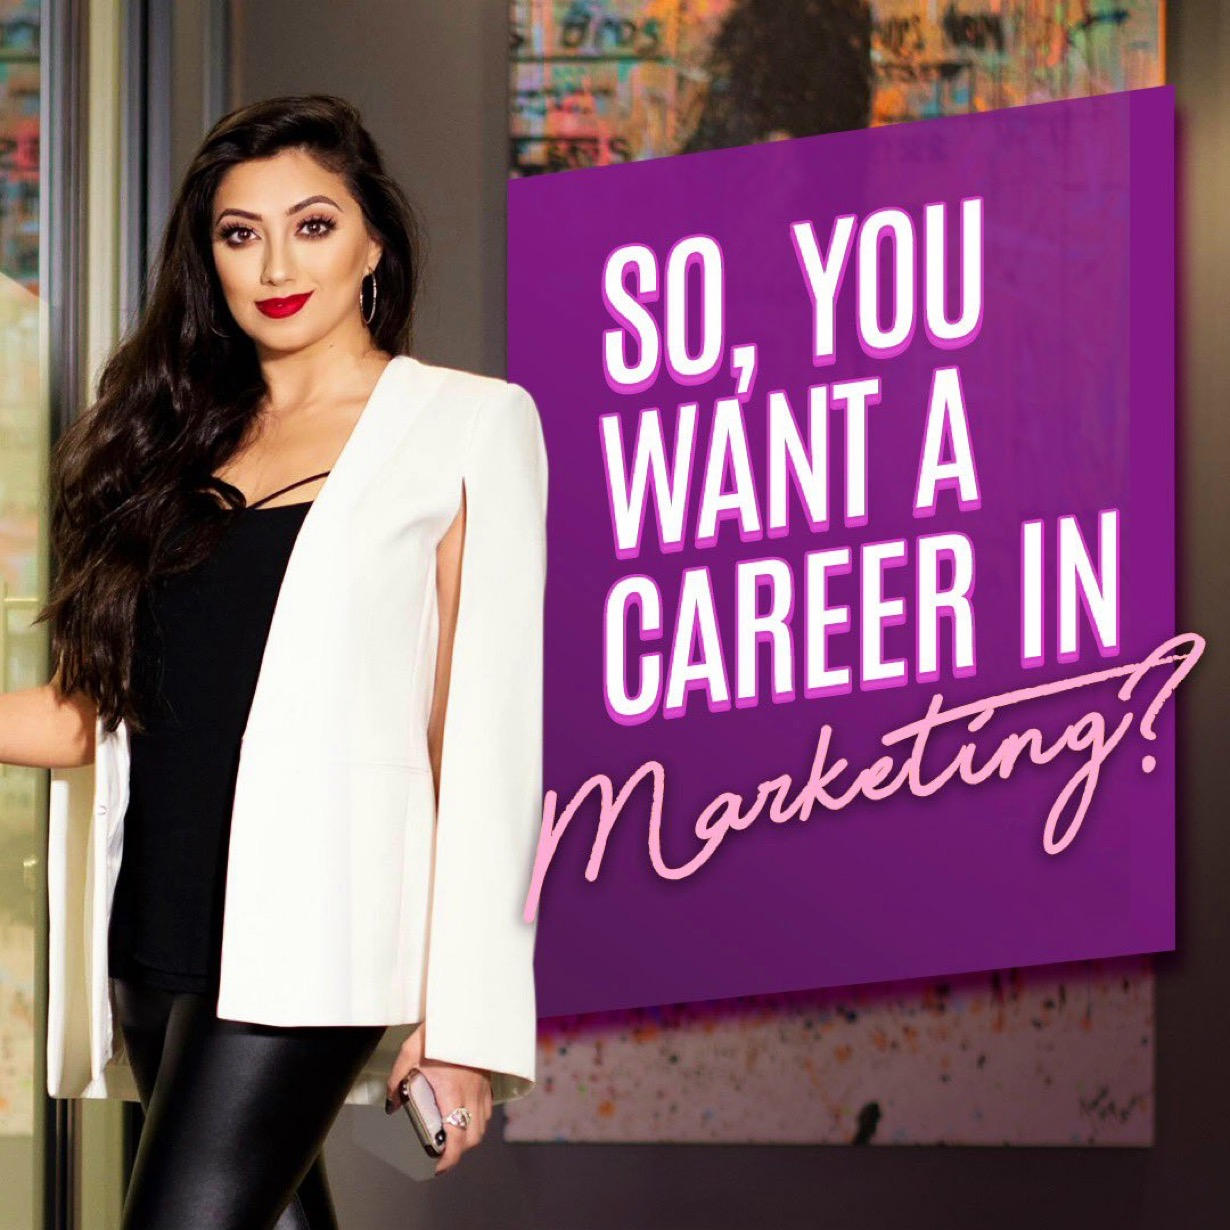 So, You Want A Career in Marketing?